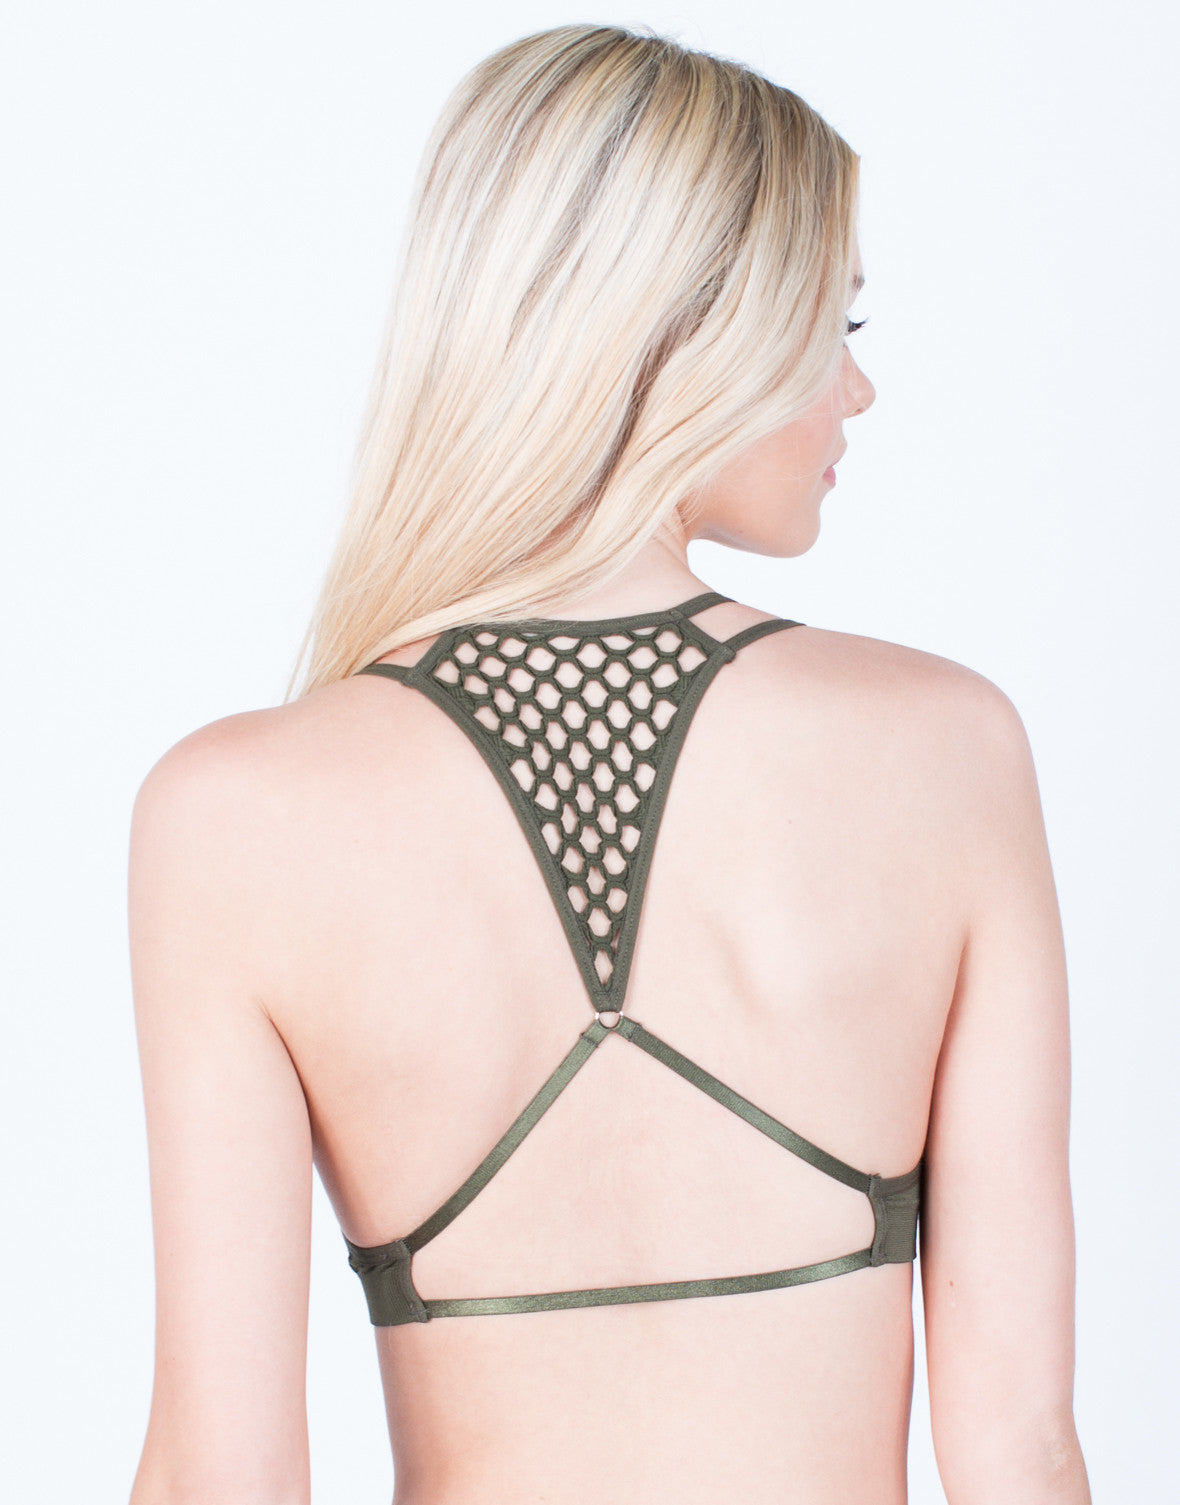 Back View of Netted Racerback Bralette